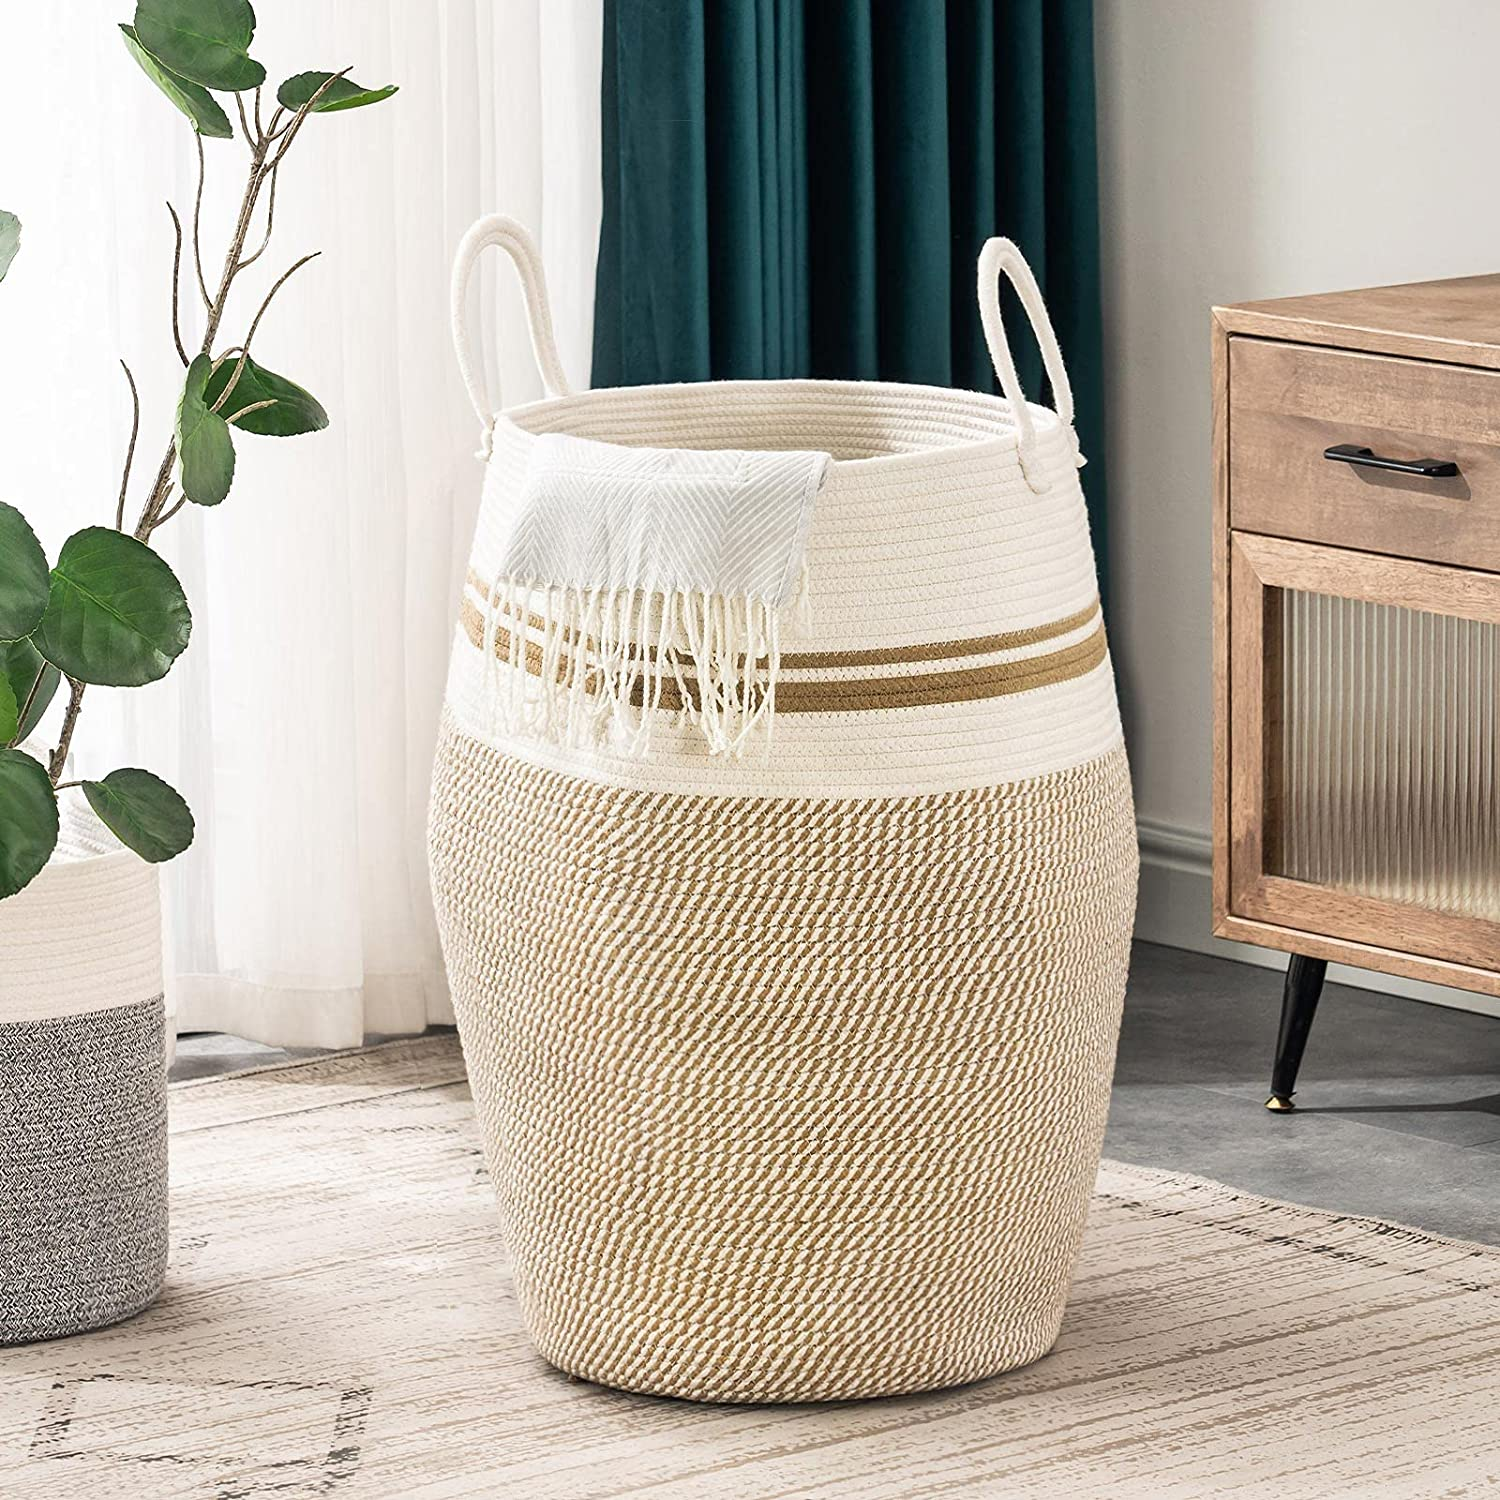 YOUDENOVA 105L Indianapolis Mall Extra Large Woven Heav Basket Excellent Laundry with Hamper